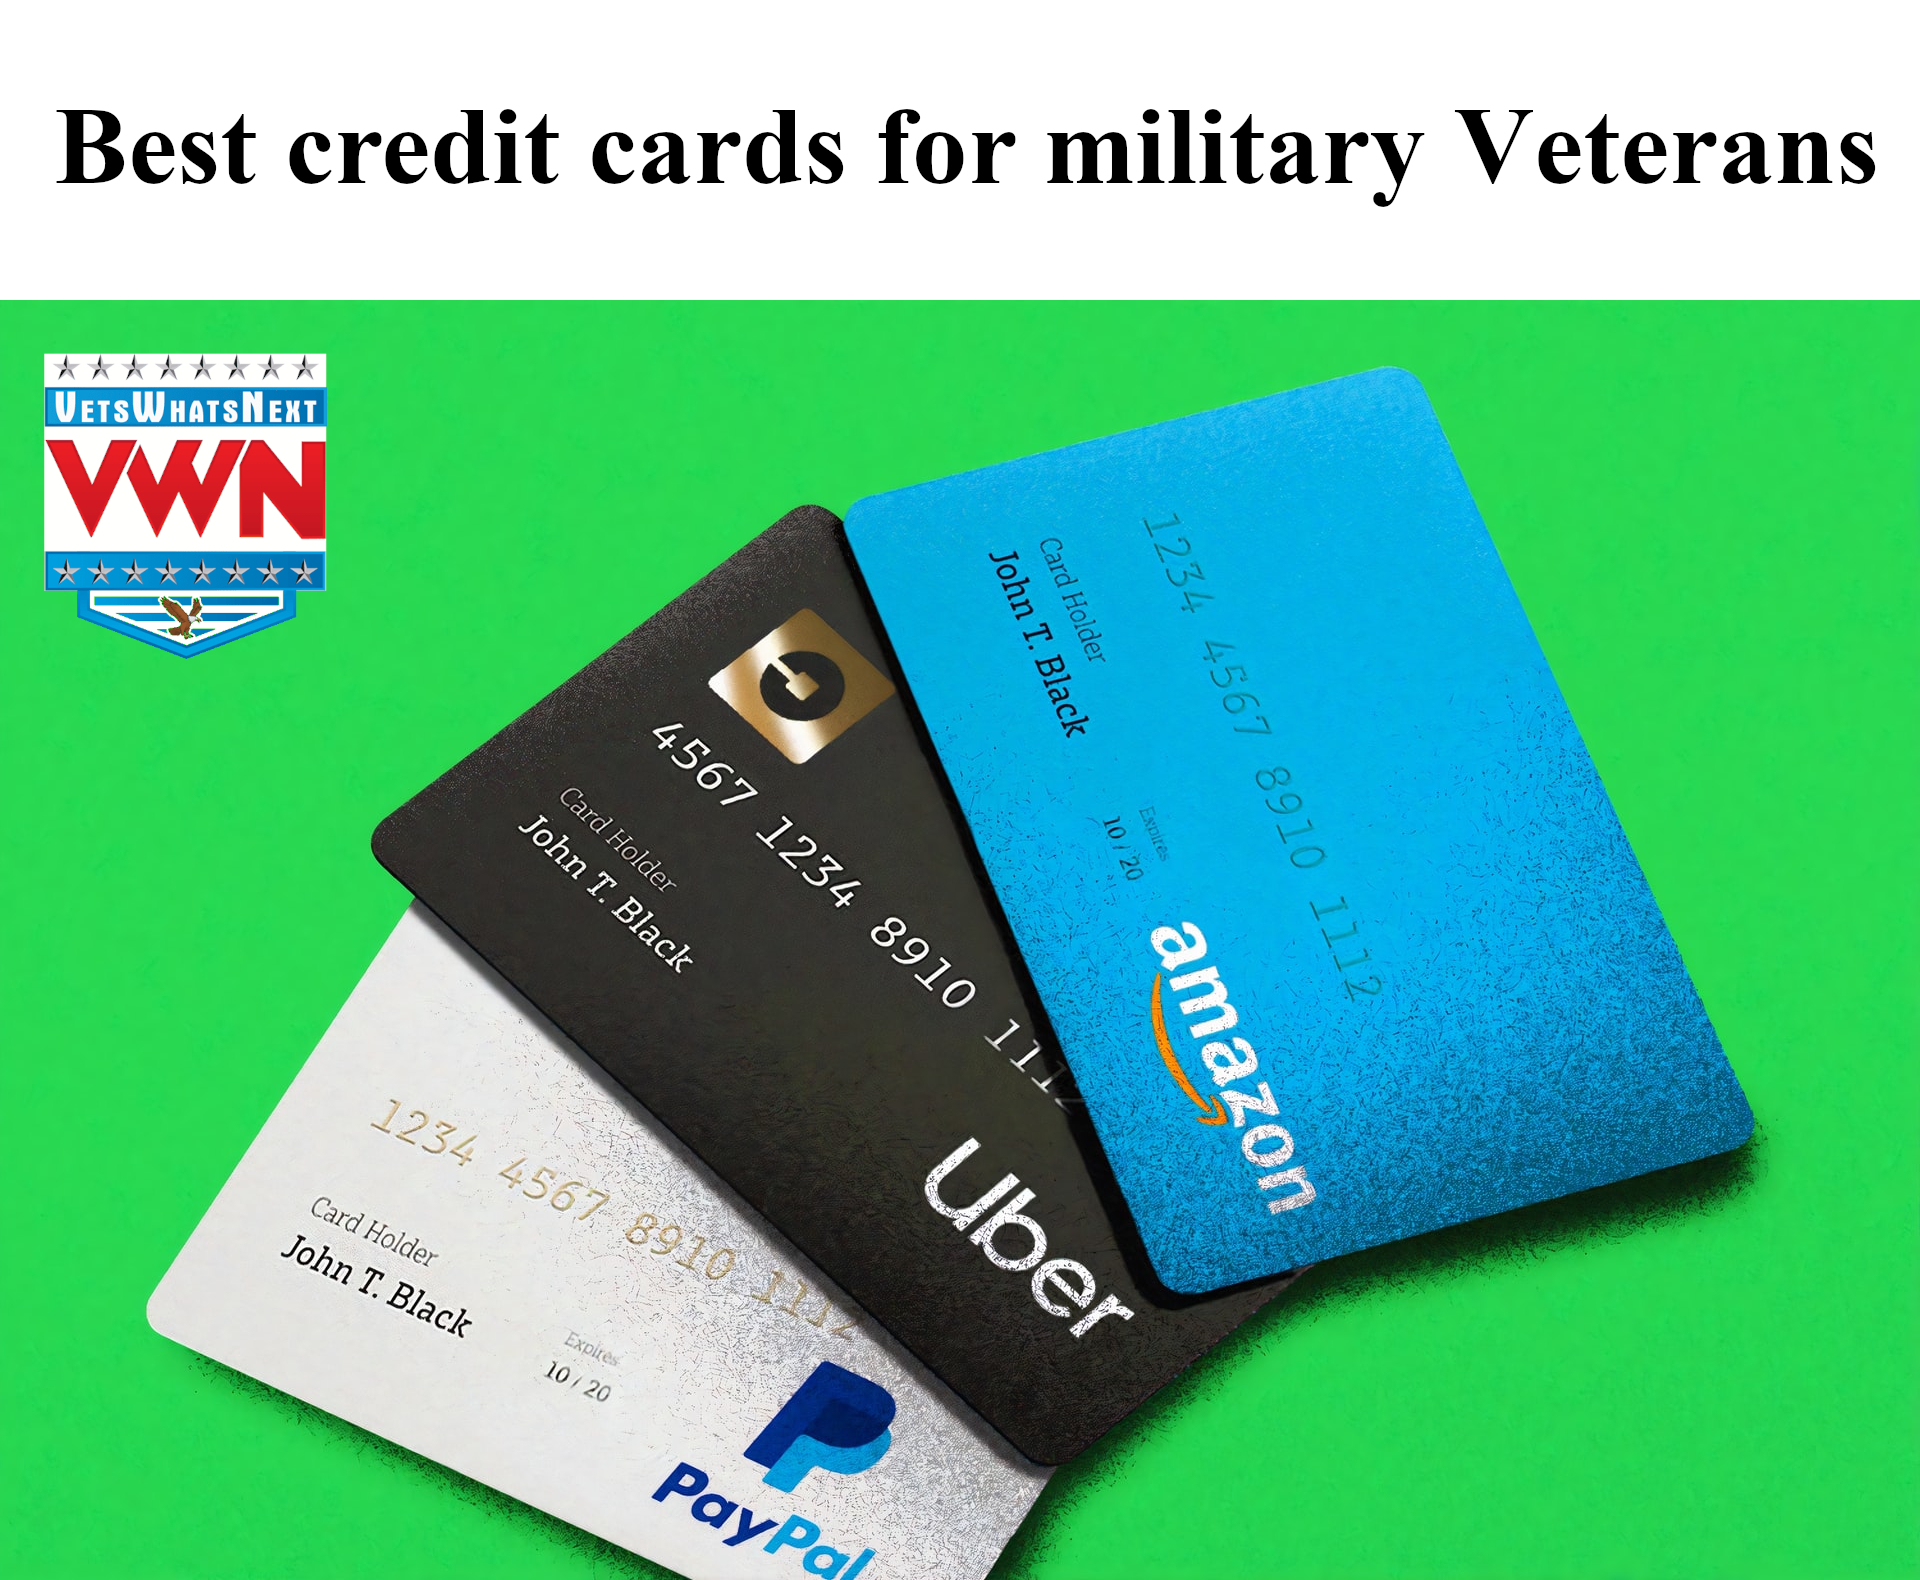 Best credit cards for military veterans | Vets Whats Next